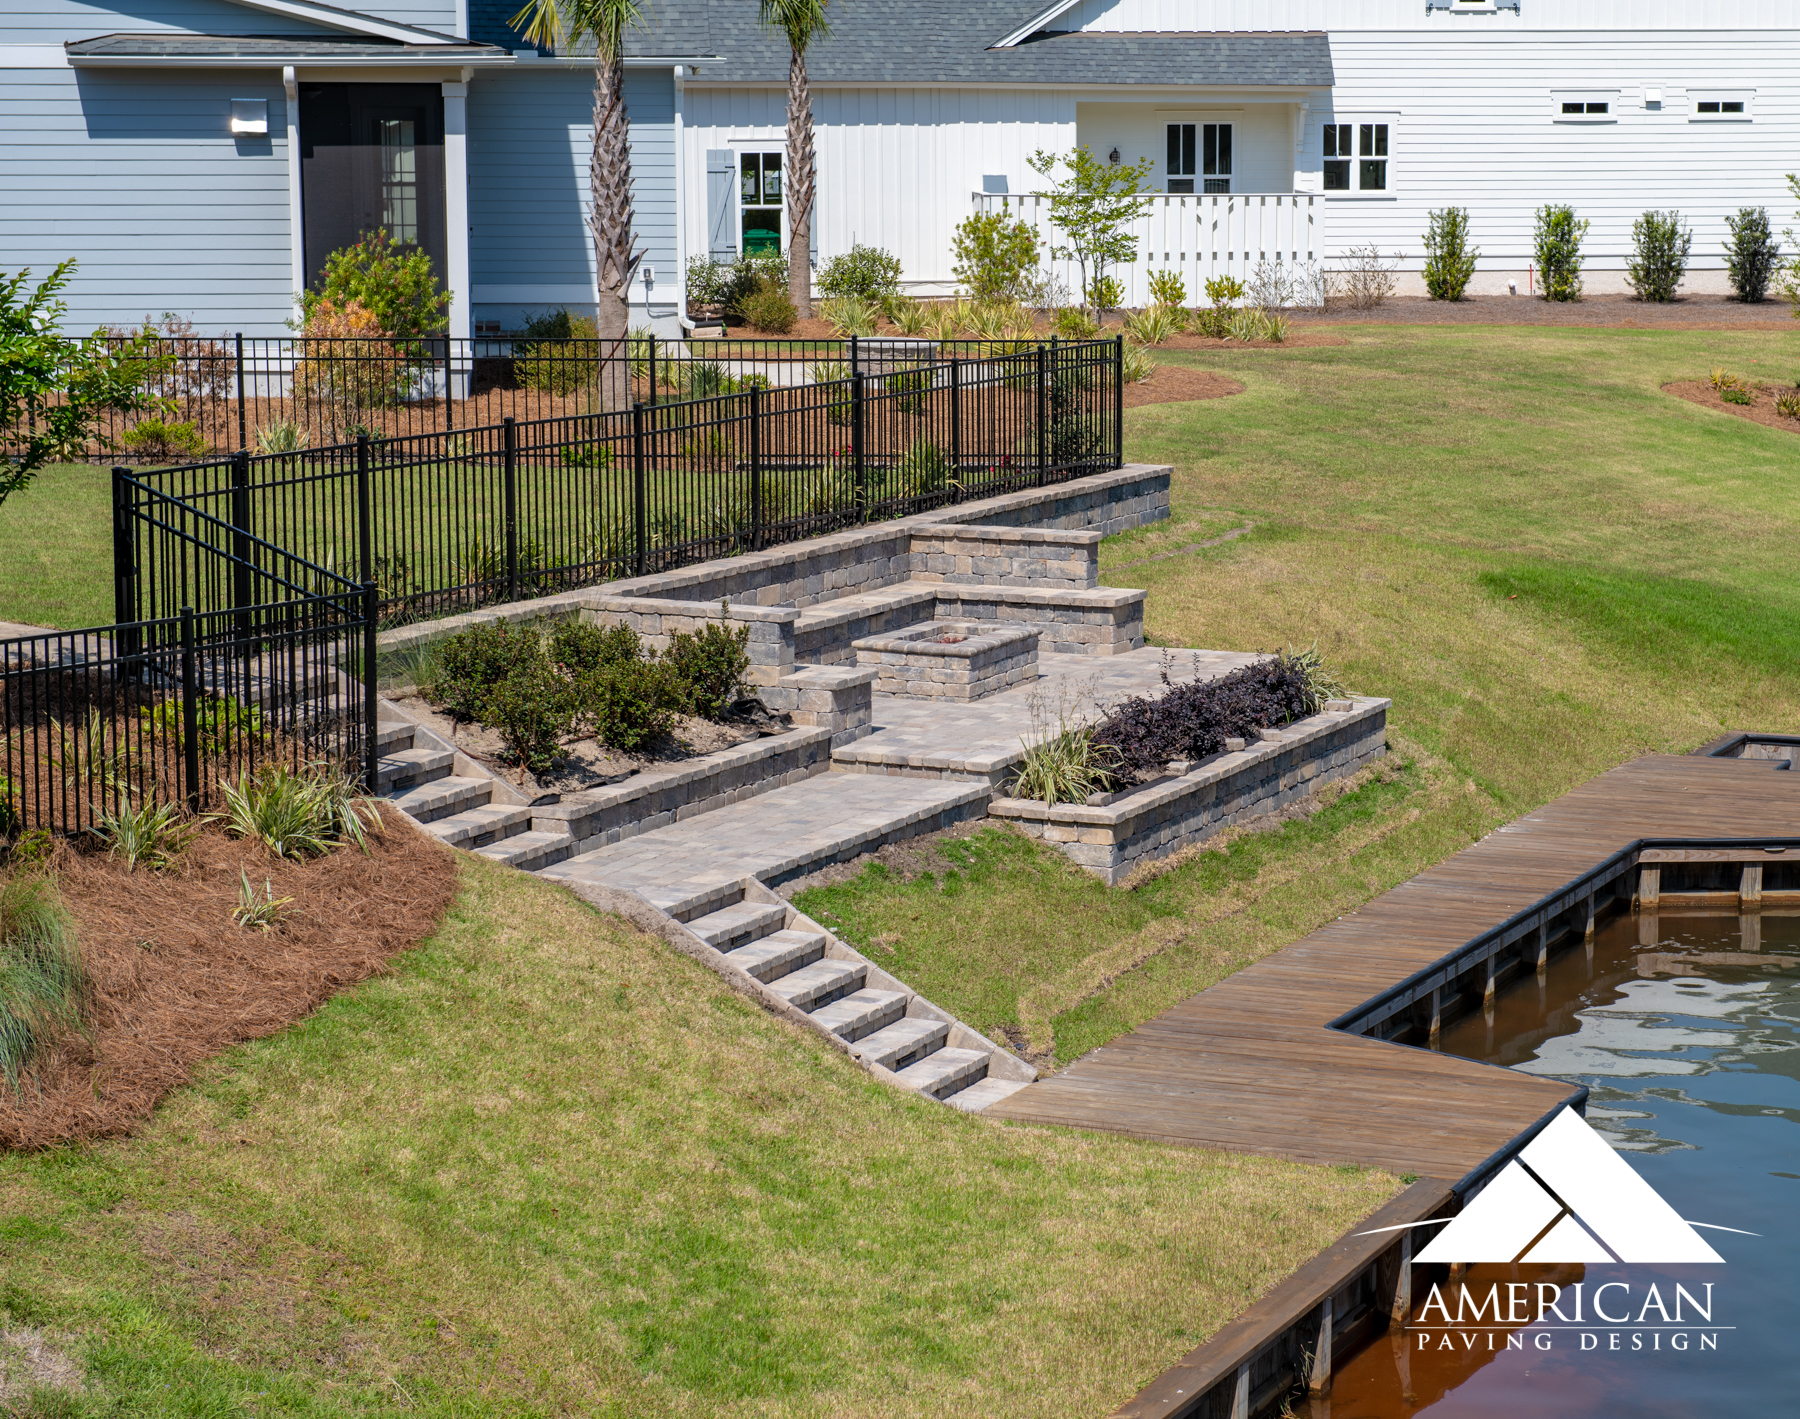 Built to impress, this multi-level paver patio is the perfect place to spend your time. With its tiered stairs and optimal seating space, you can entertain all your family and friends in one spot!